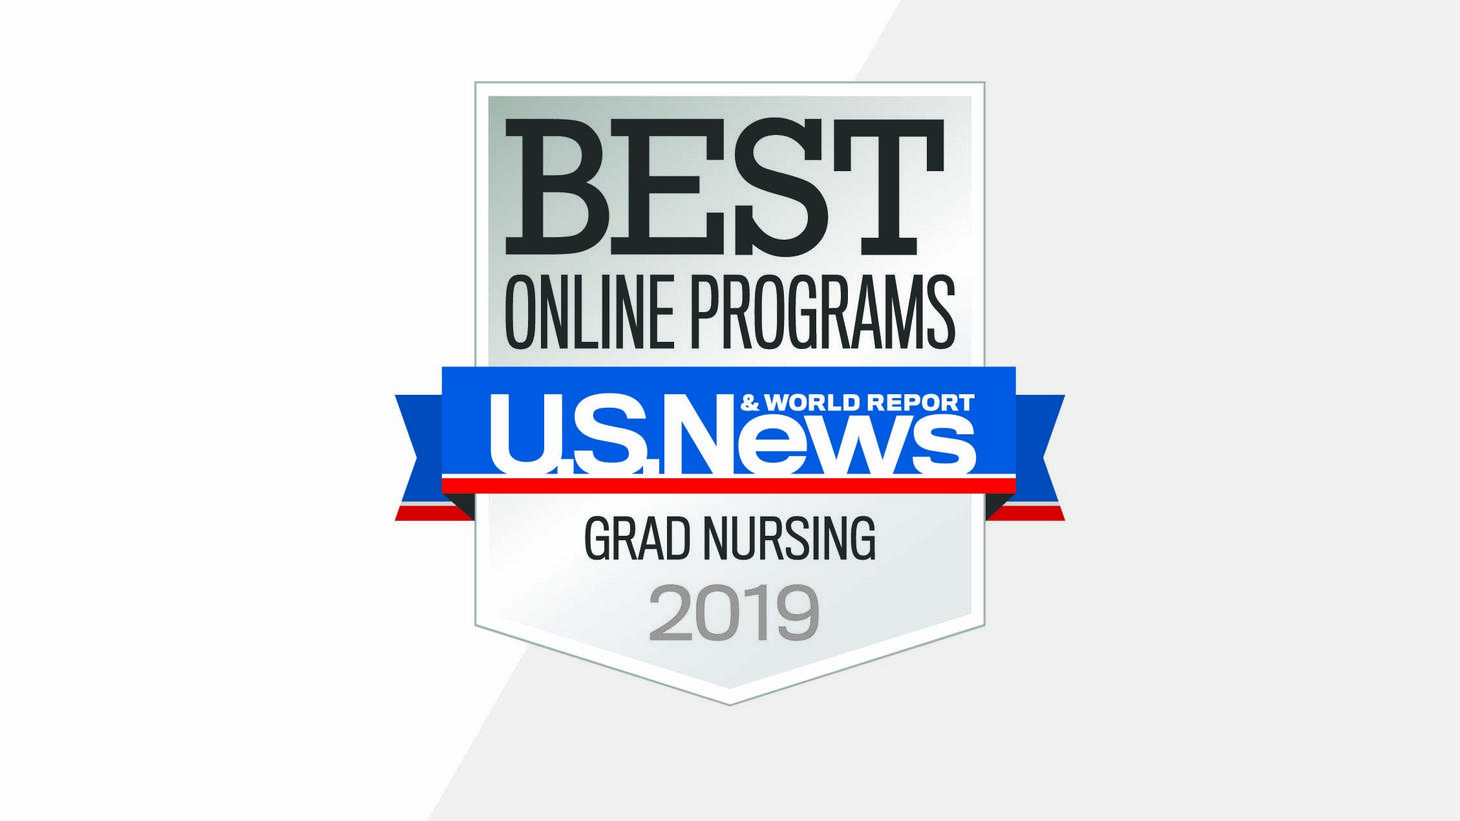 Best Online Programs Grad Nursing 2019